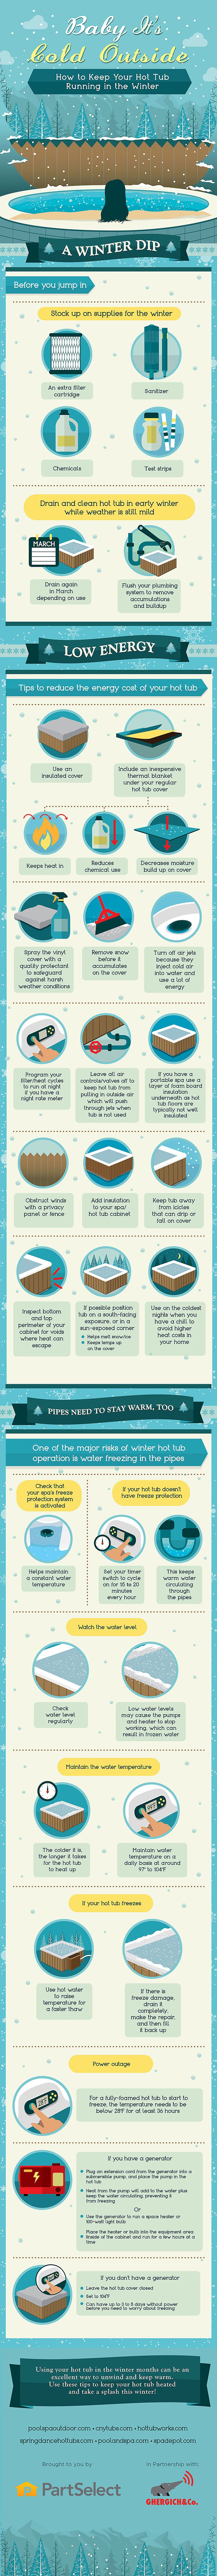 Make sure your hot tub doesn't freeze along with everything else this winter! Follow our hot tub maintenance guide! #HotTub http://www.partselect.com/JustForFun/Winter-Hot-Tub-Maintenance.aspx